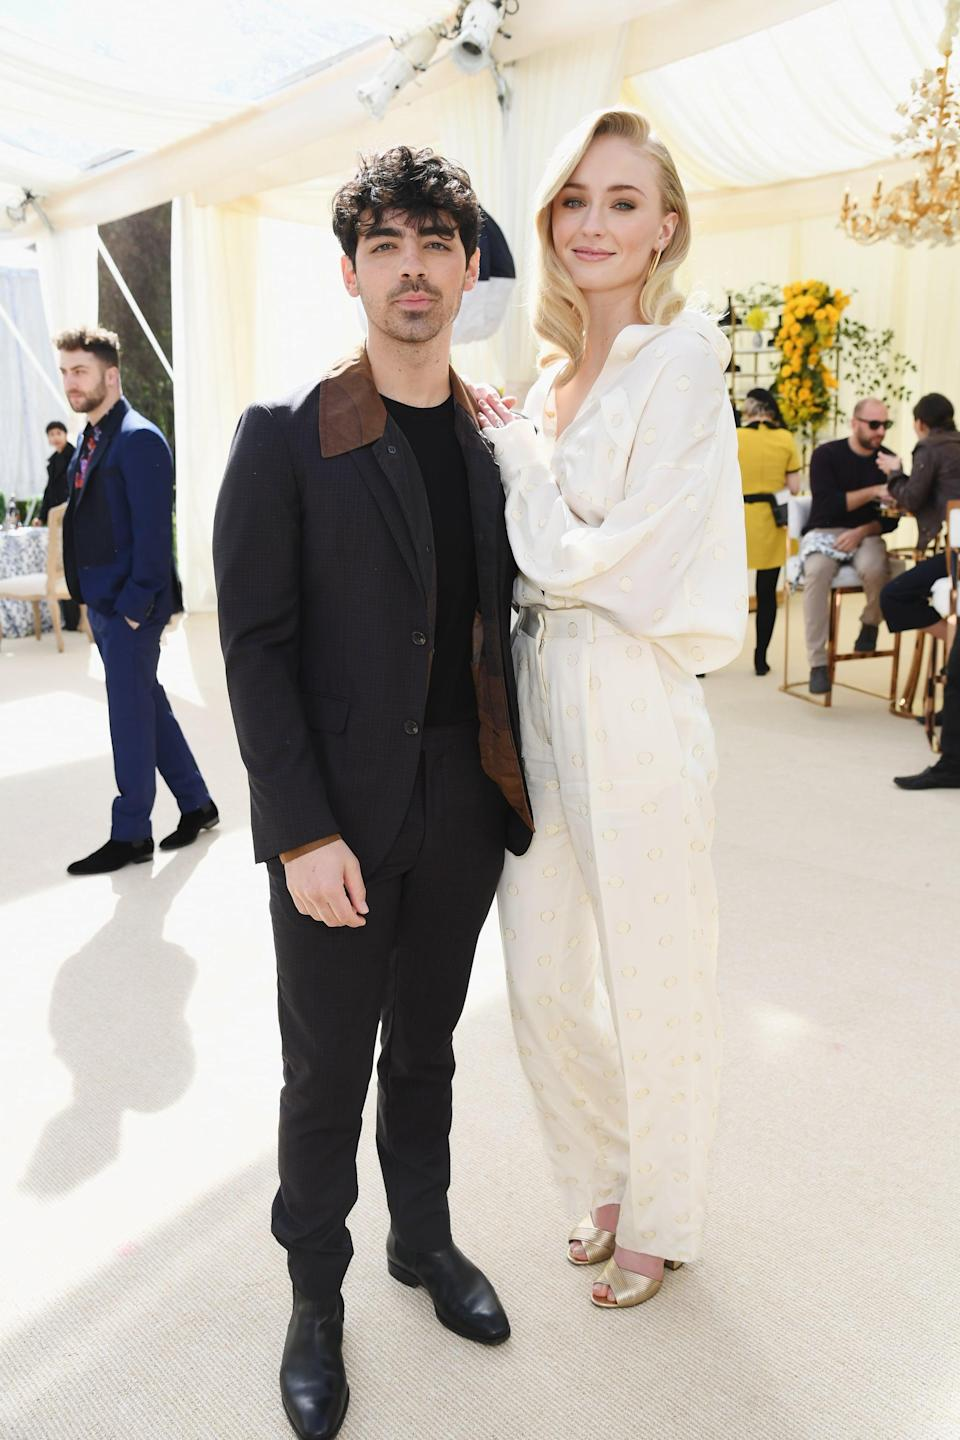 "<p>The Jonas Brothers singer and <strong>Game of Thrones</strong> actress are <a href=""https://www.popsugar.com/celebrity/sophie-turner-pregnant-with-first-child-47212794"" class=""link rapid-noclick-resp"" rel=""nofollow noopener"" target=""_blank"" data-ylk=""slk:reportedly expecting their first child together"">reportedly expecting their first child together</a>, though the couple have yet to confirm the news. </p>"